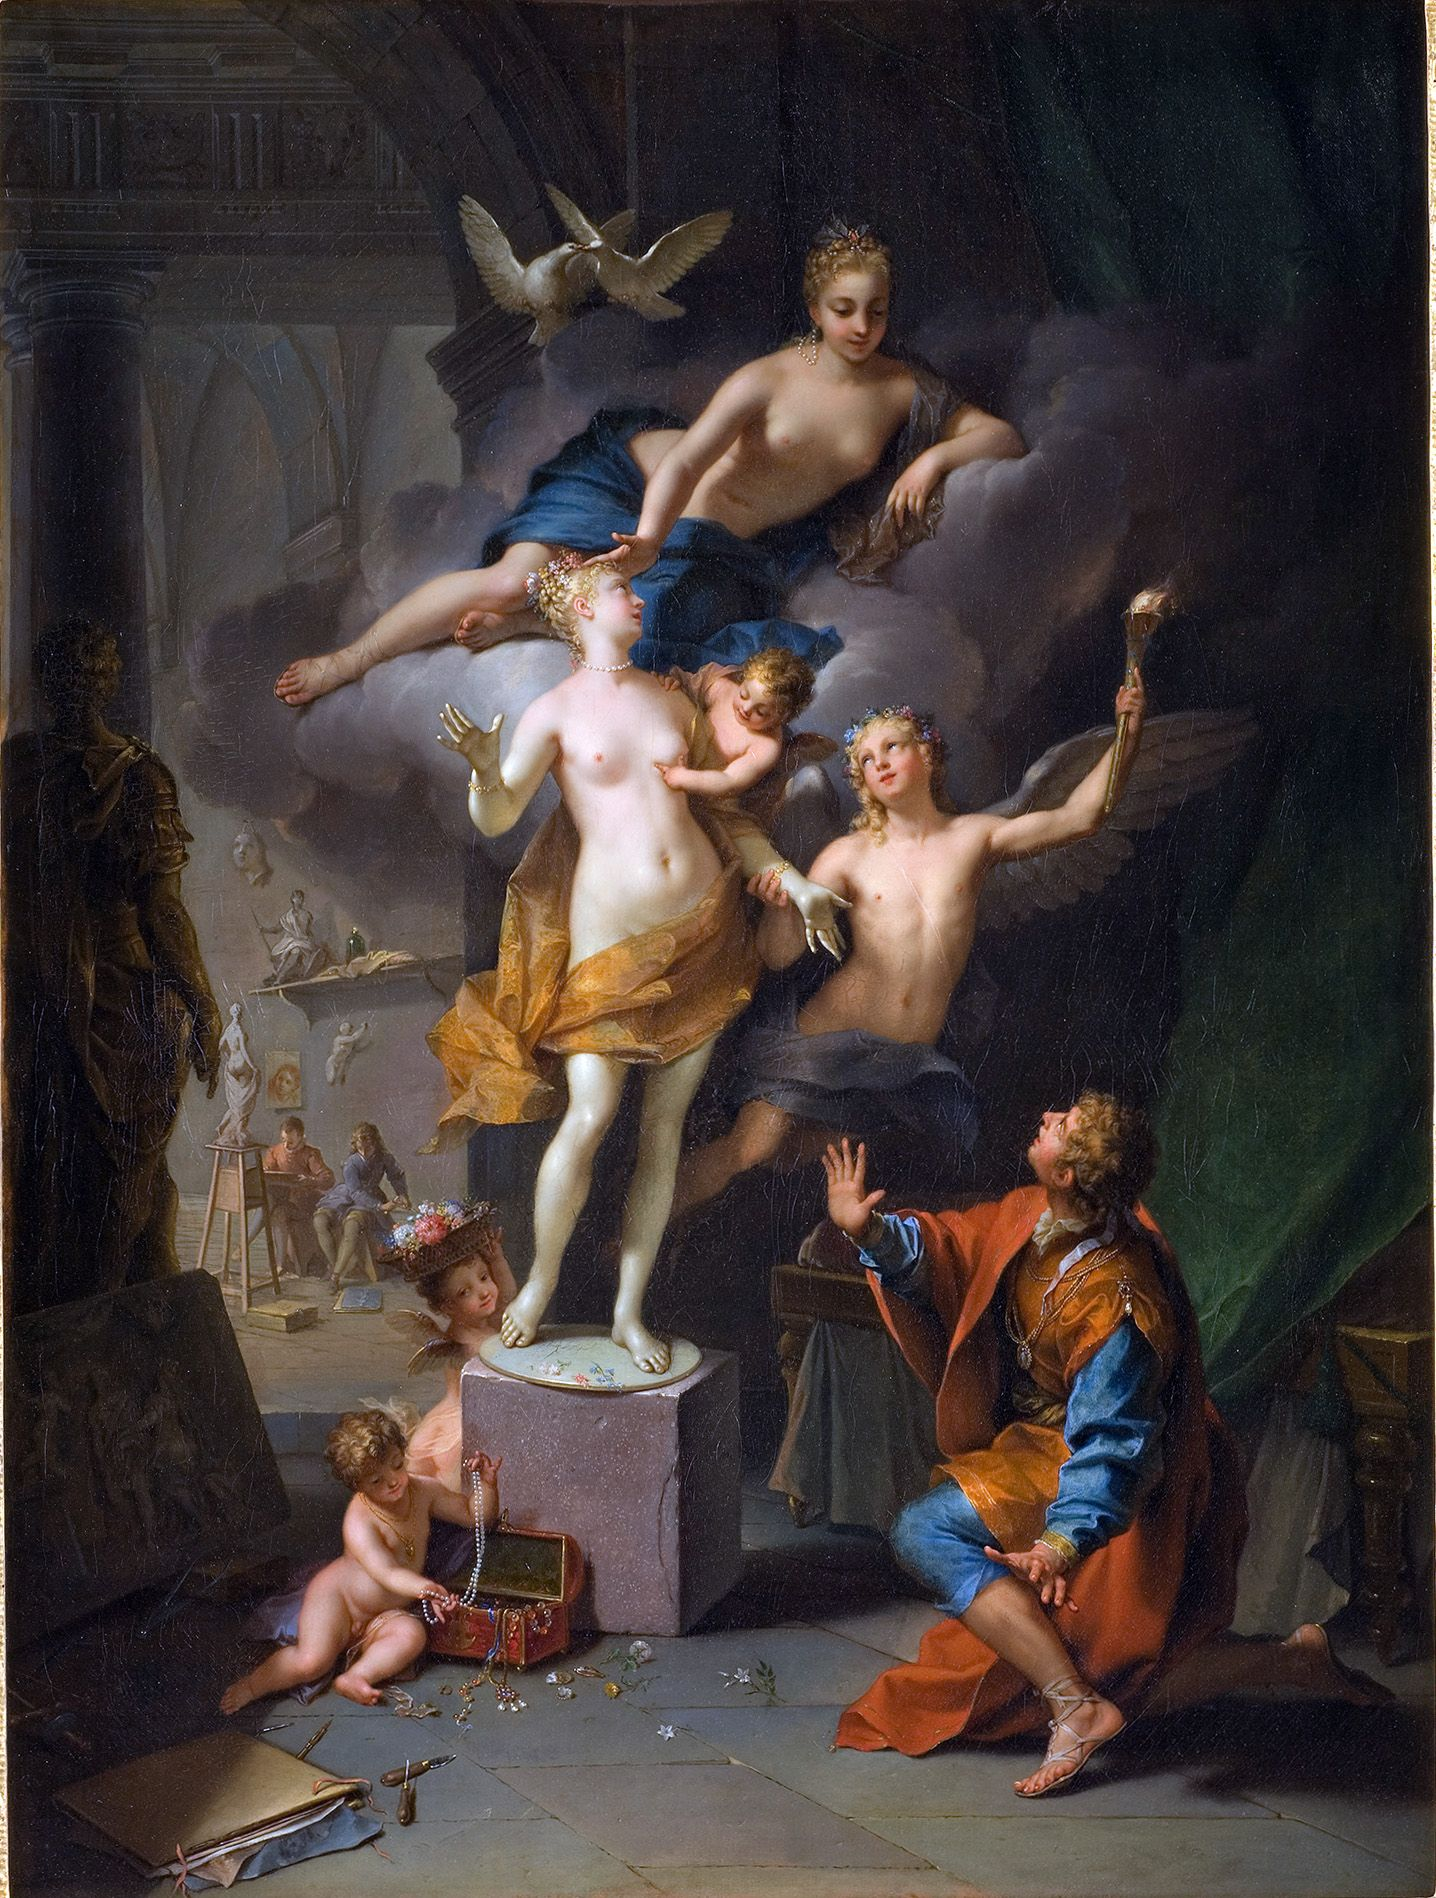 raoux pyg on and galatea oil on canvas x raoux 1677 1734 pyg on and galatea oil on canvas 134 x